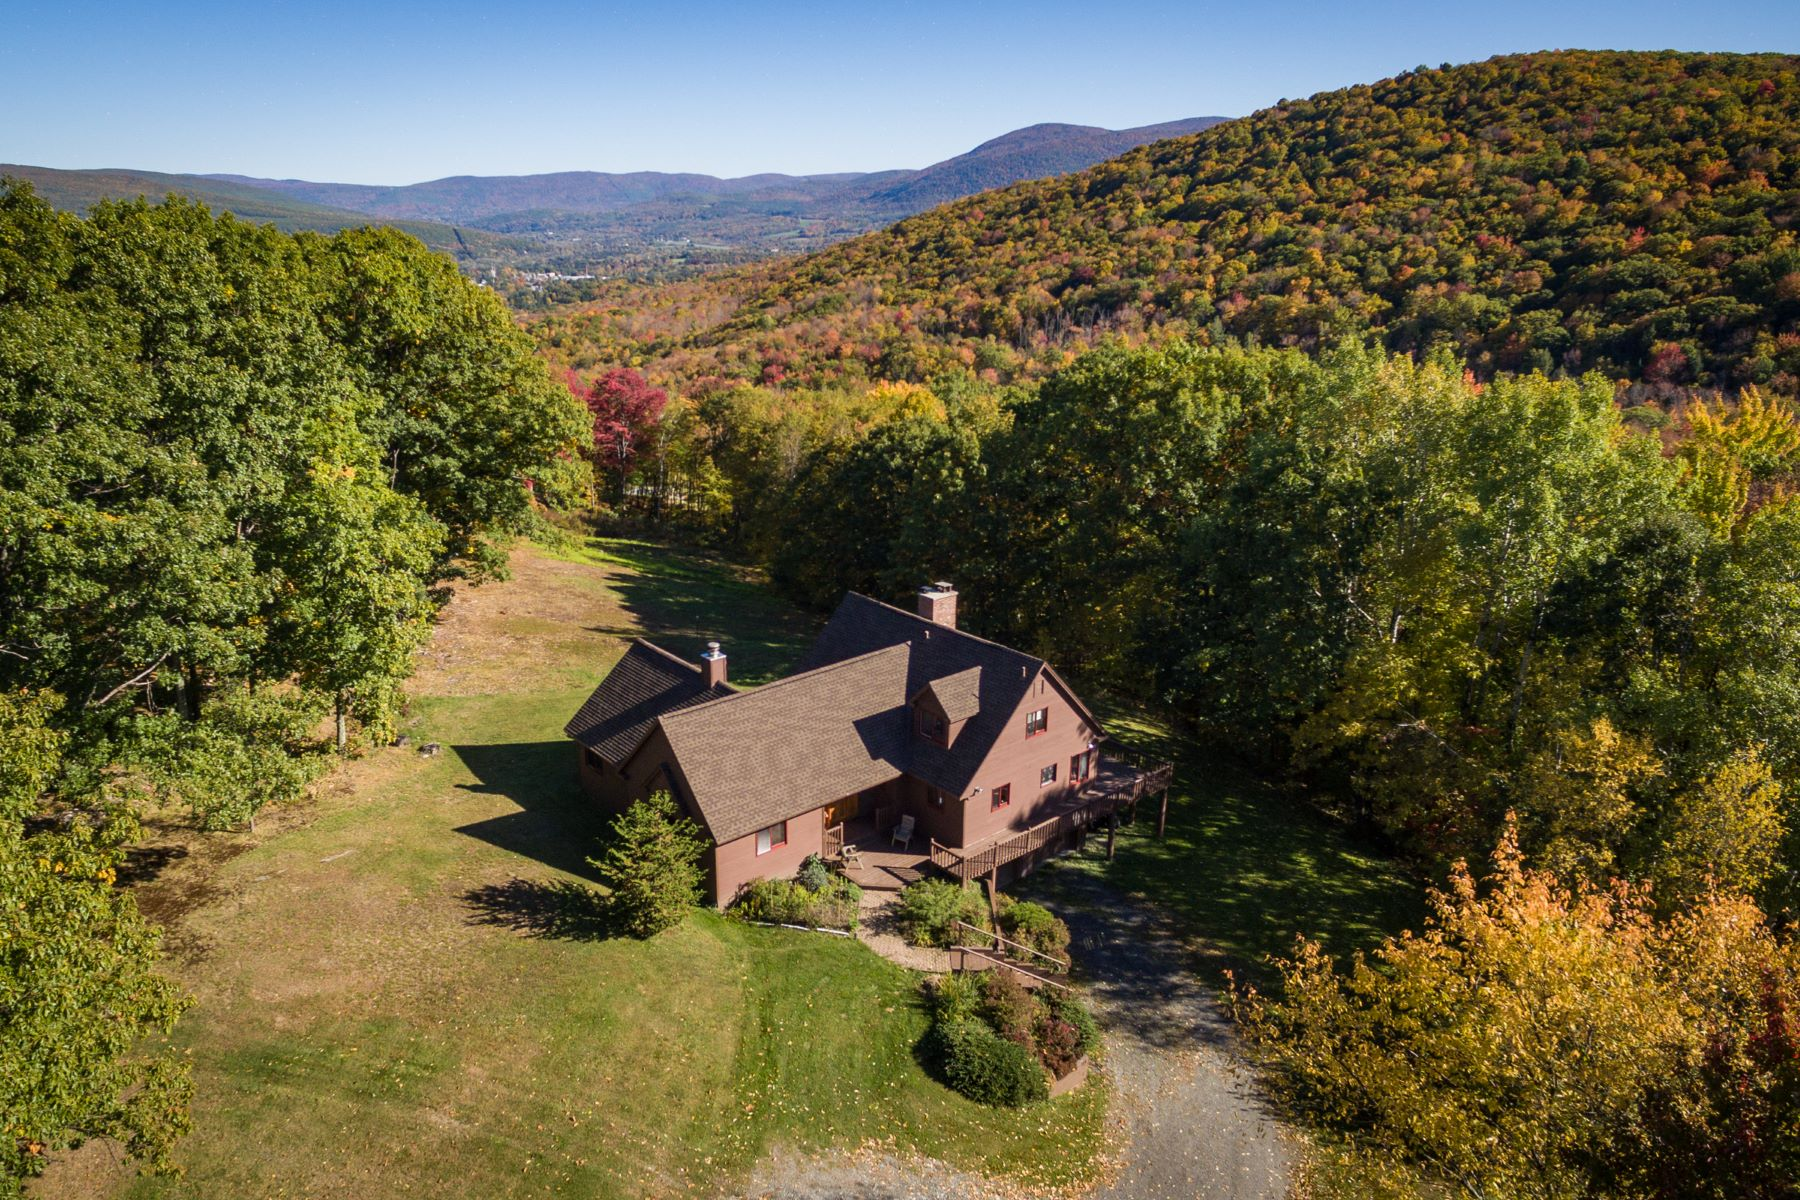 Maison unifamiliale pour l Vente à Spectacular 200-Acre Parcel with Two Homes, Barn, Views Williamstown, Massachusetts 01267 États-Unis